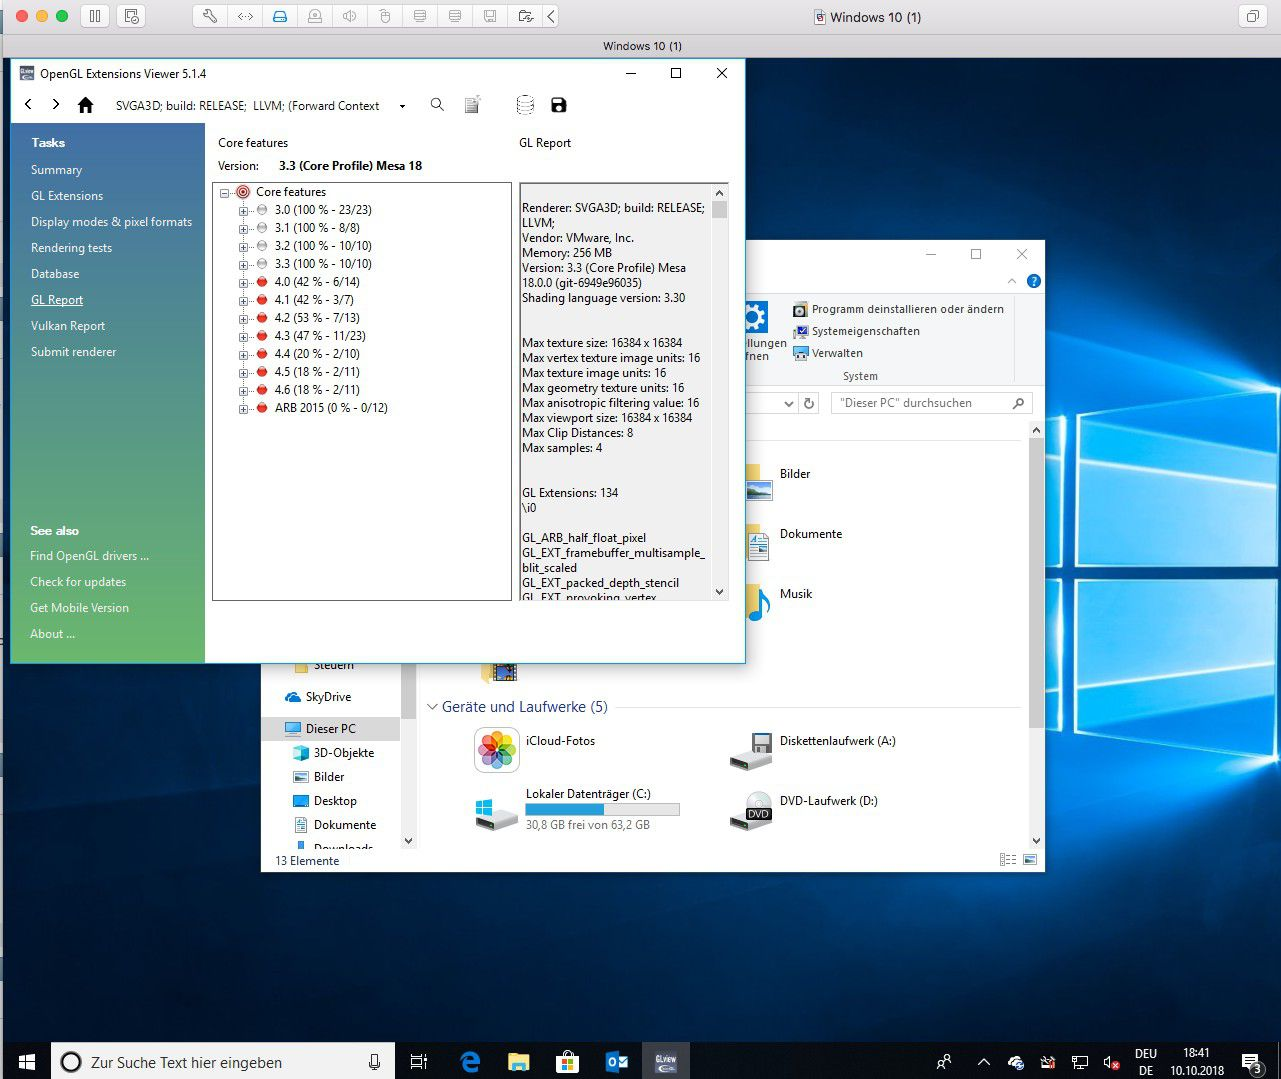 Windows am Mac: Parallels Desktop 14 und Vmware Fusion 11 im